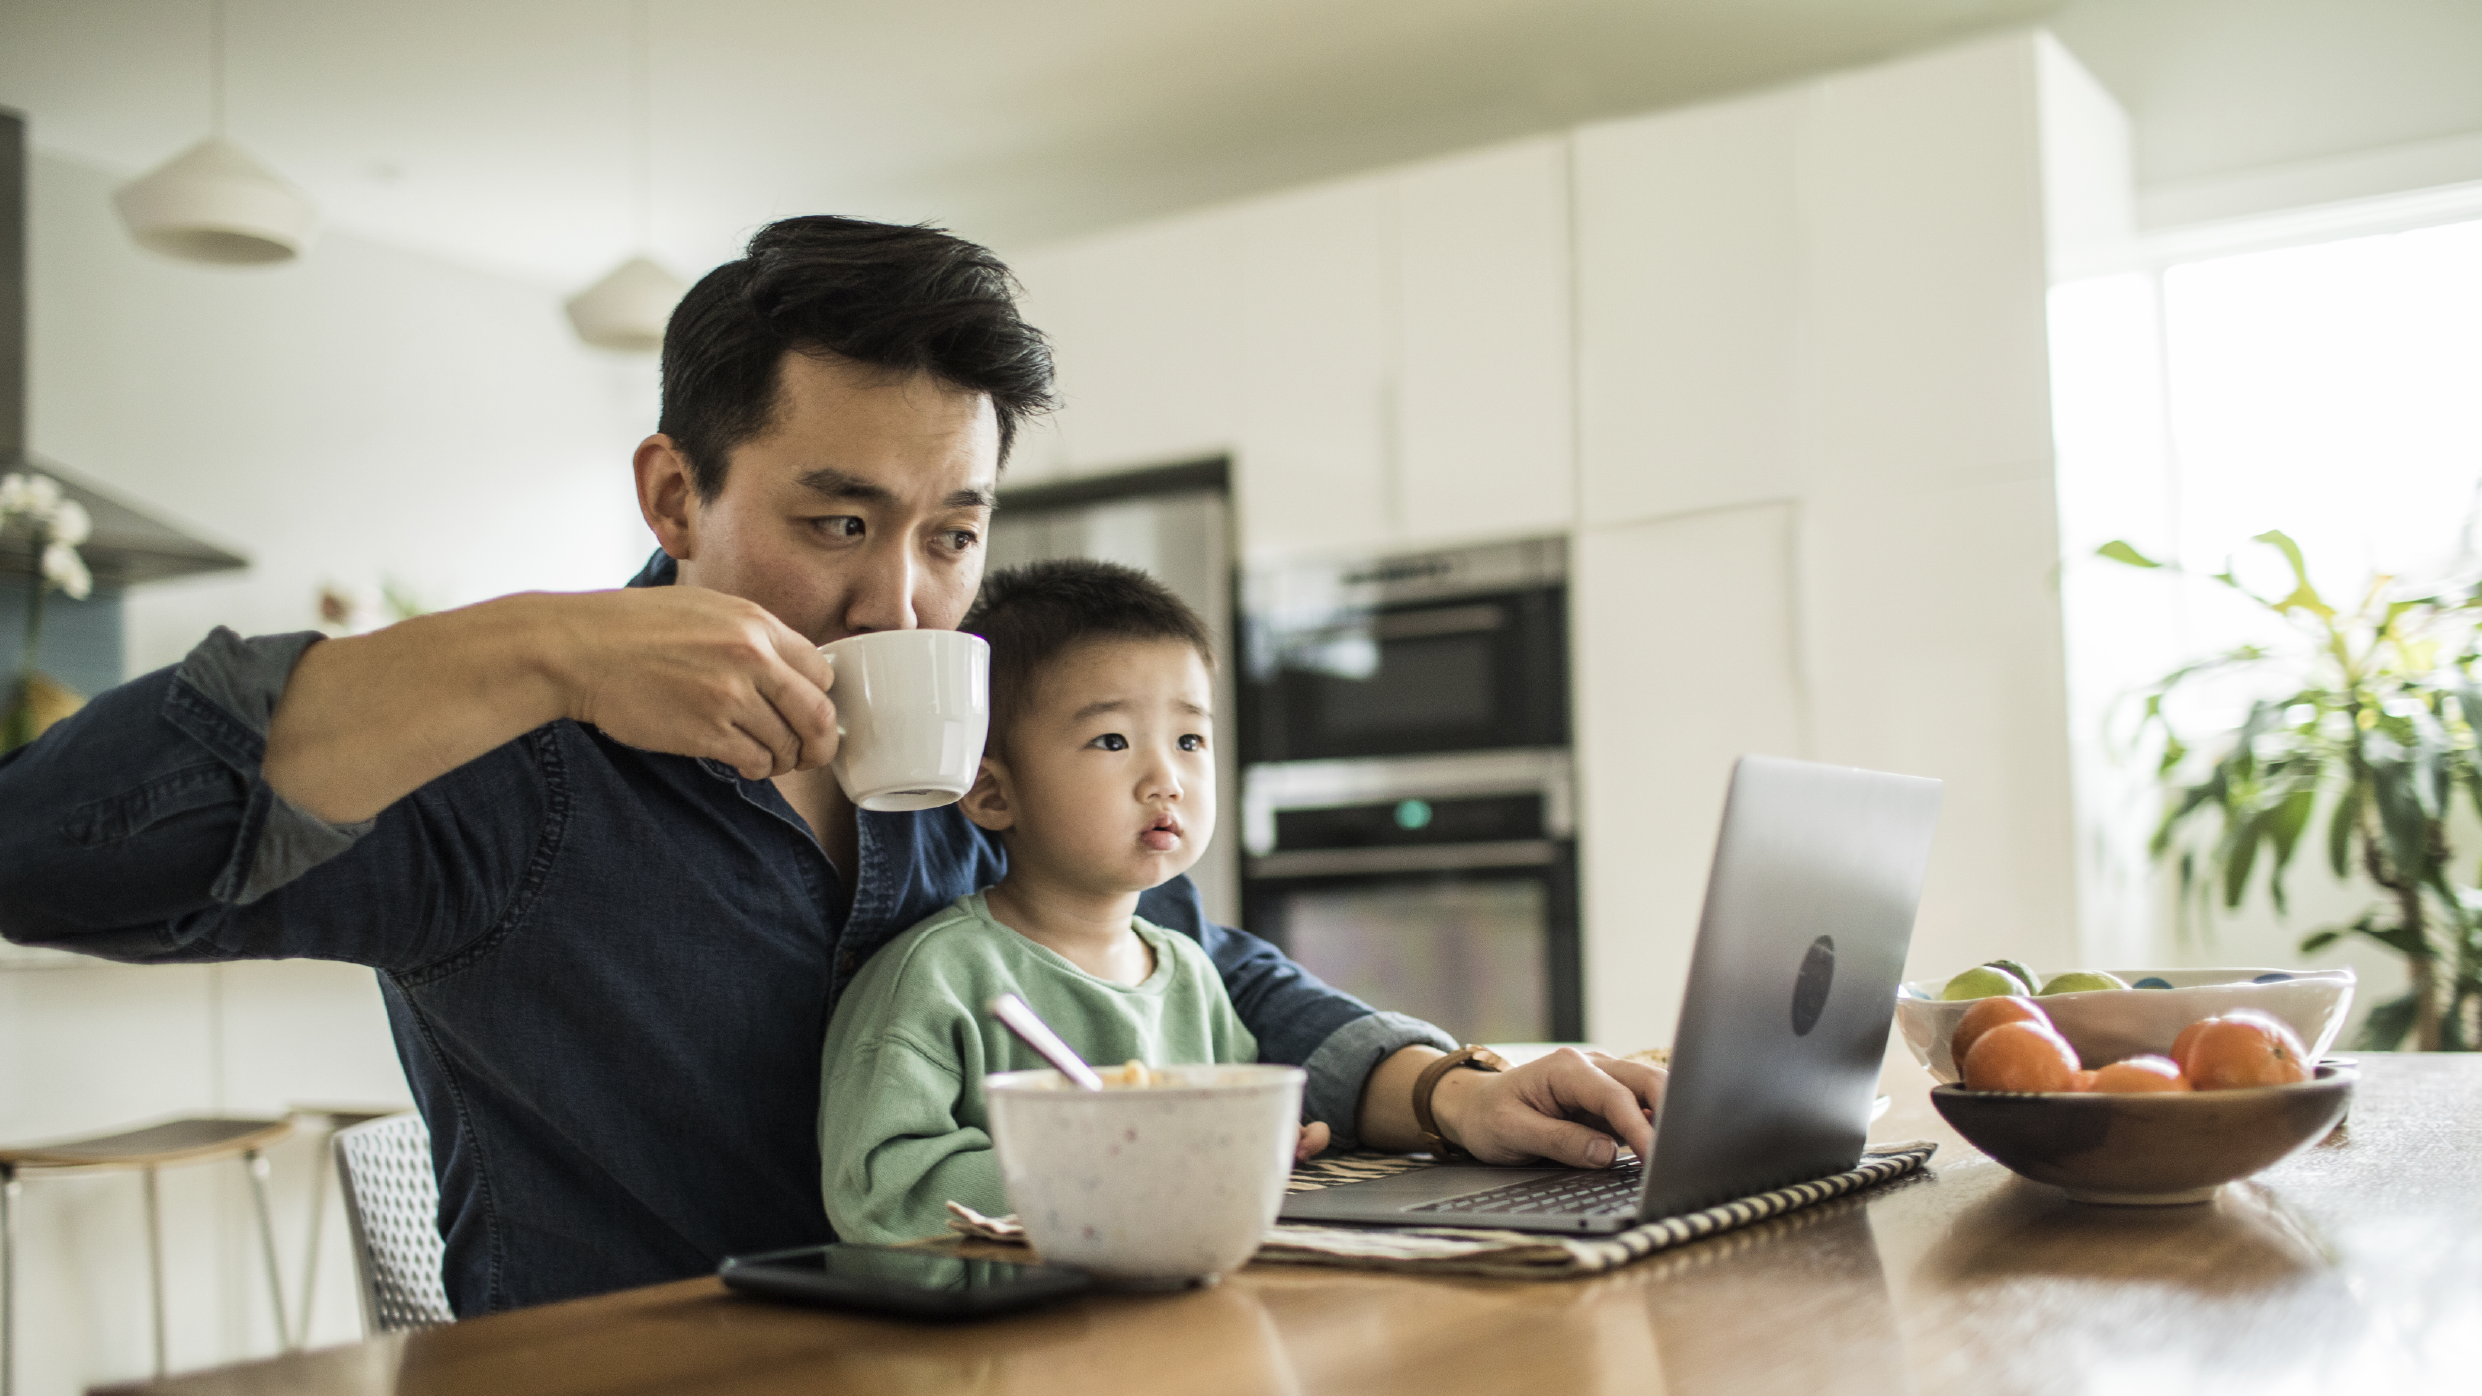 Father and son at kitchen table on laptop